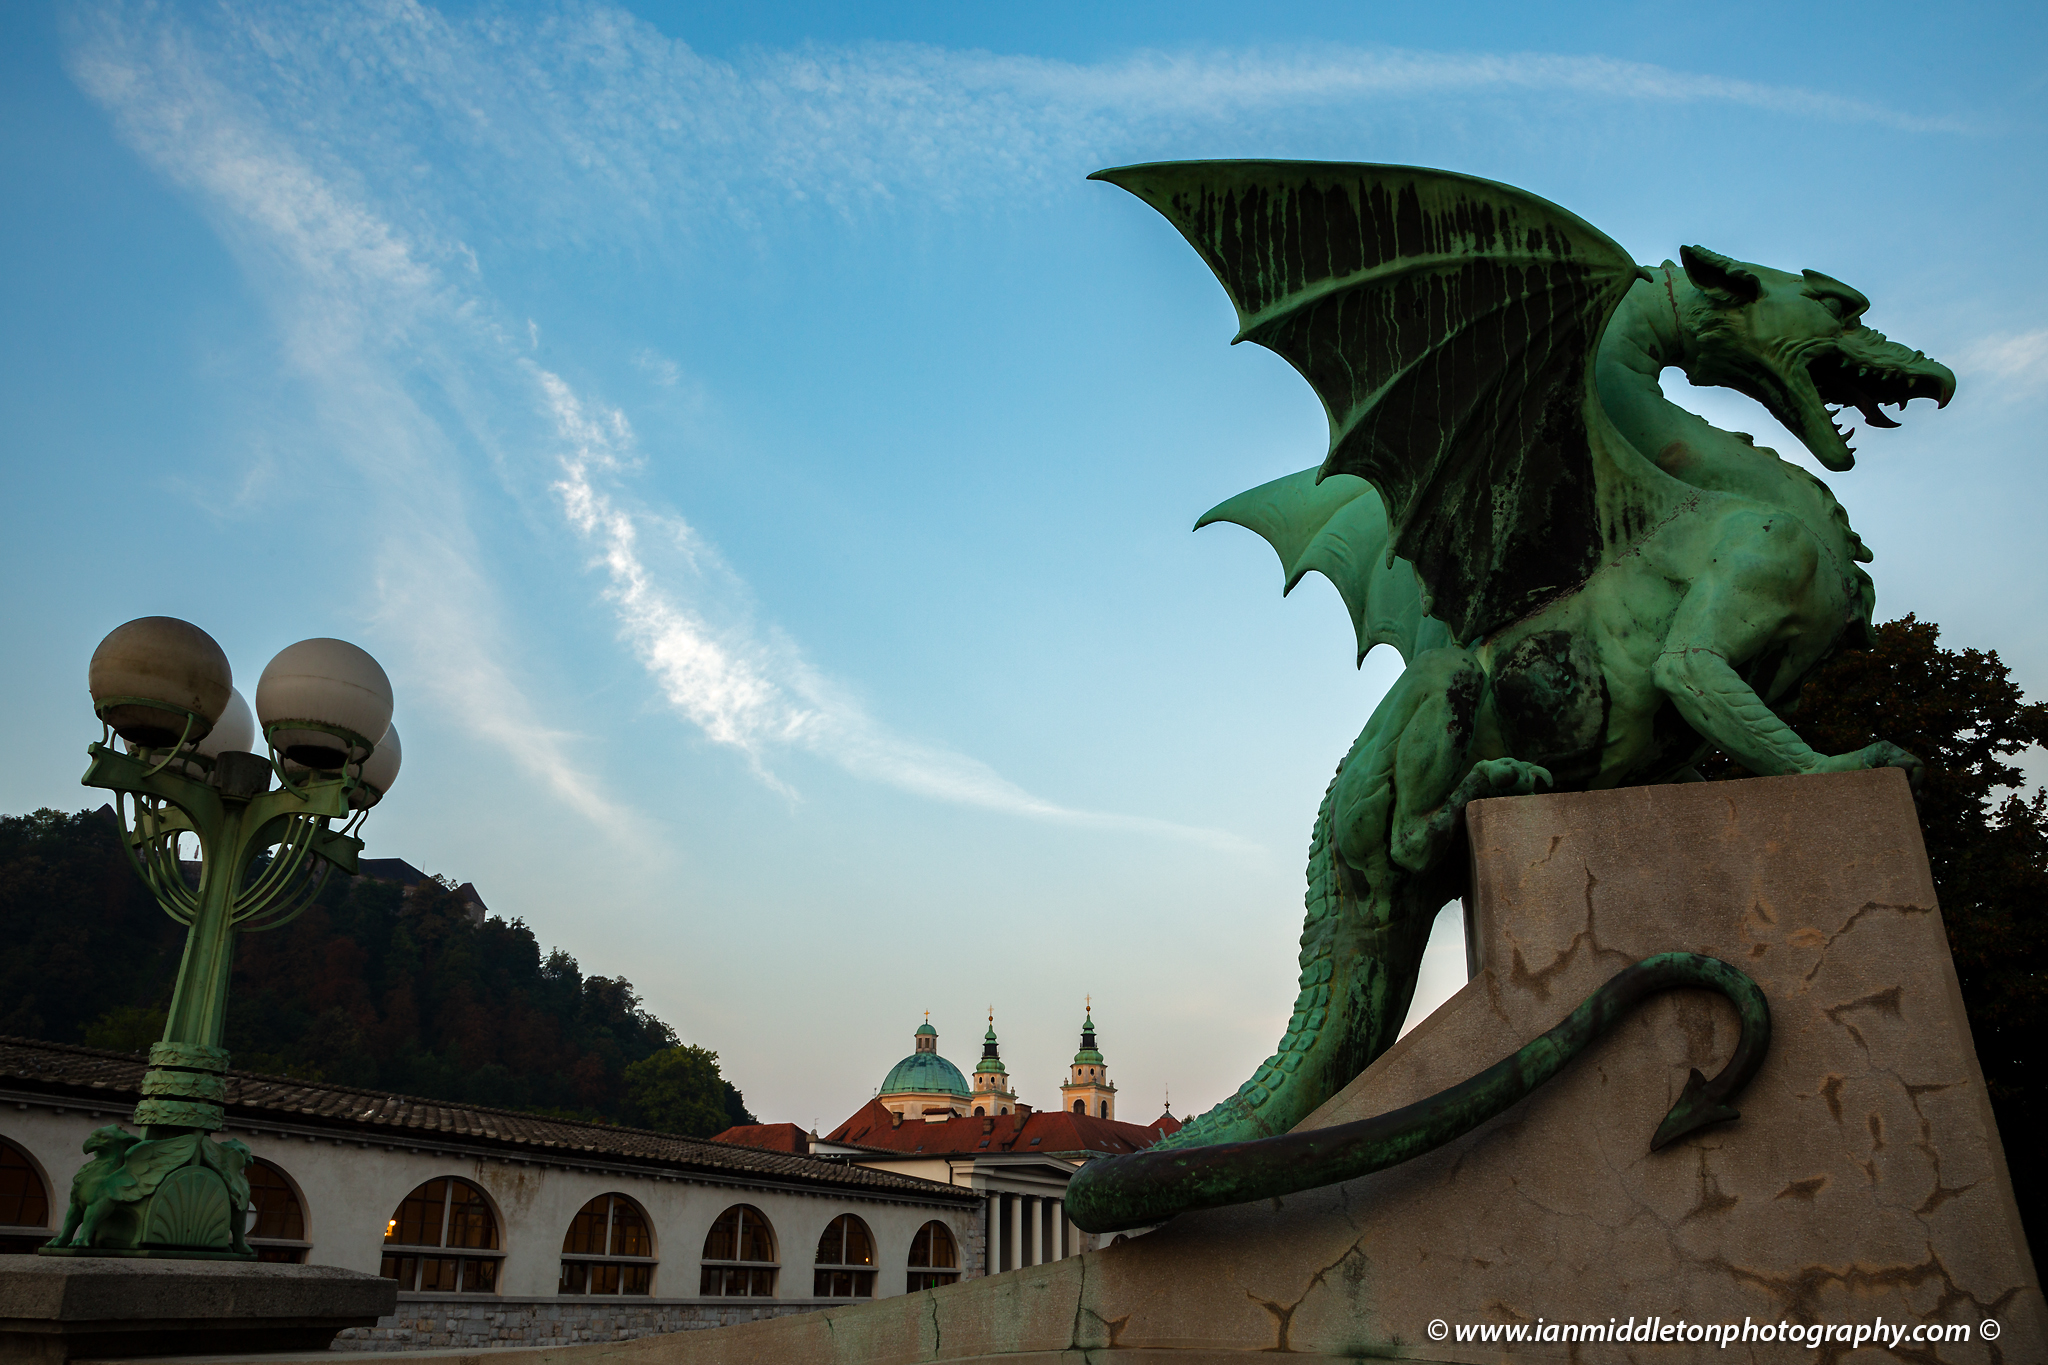 Dragon Bridge in Ljubljana, Slovenia.